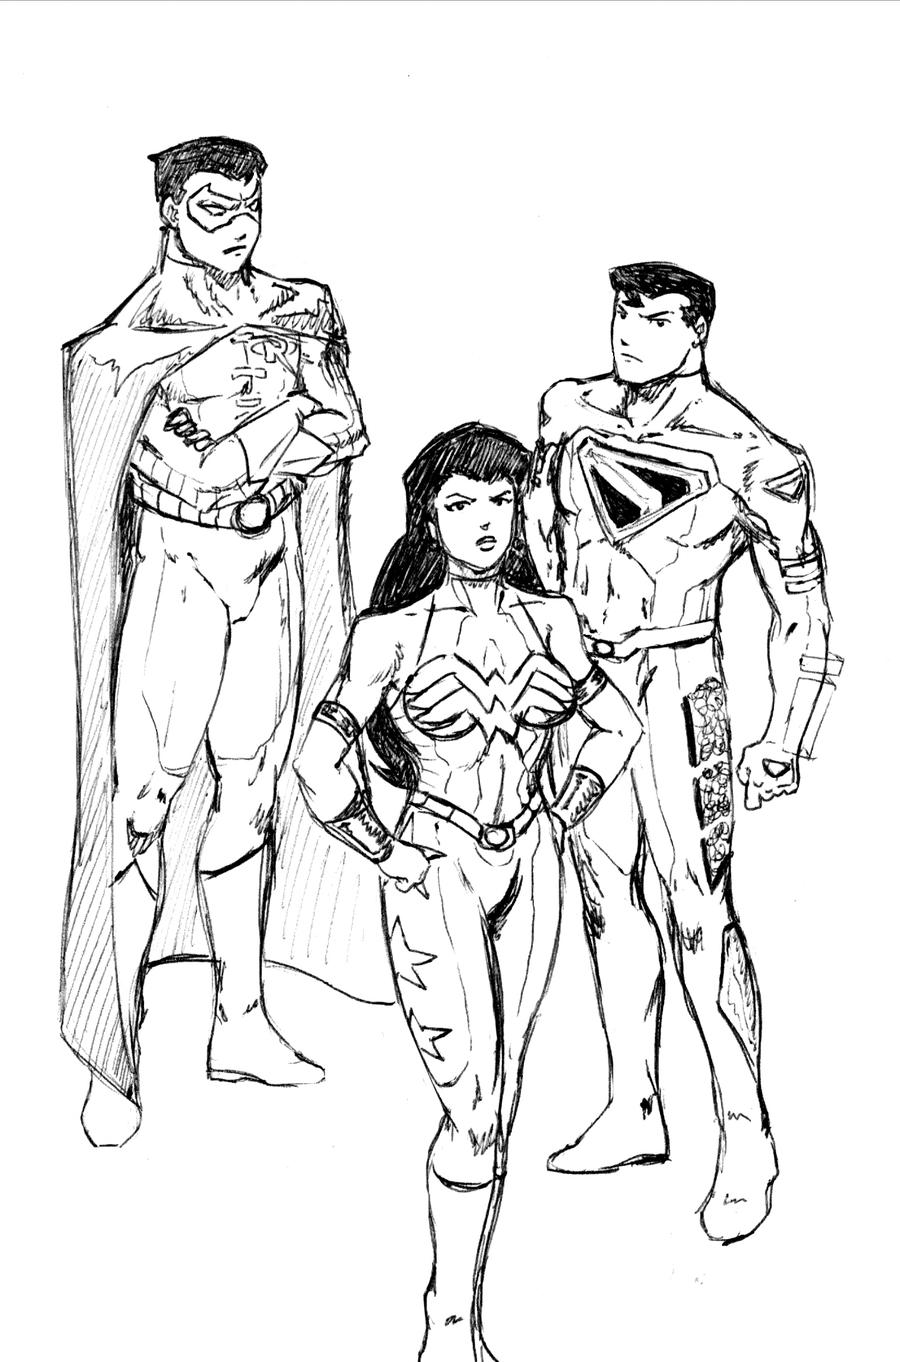 The First Young Justice by jondalar137